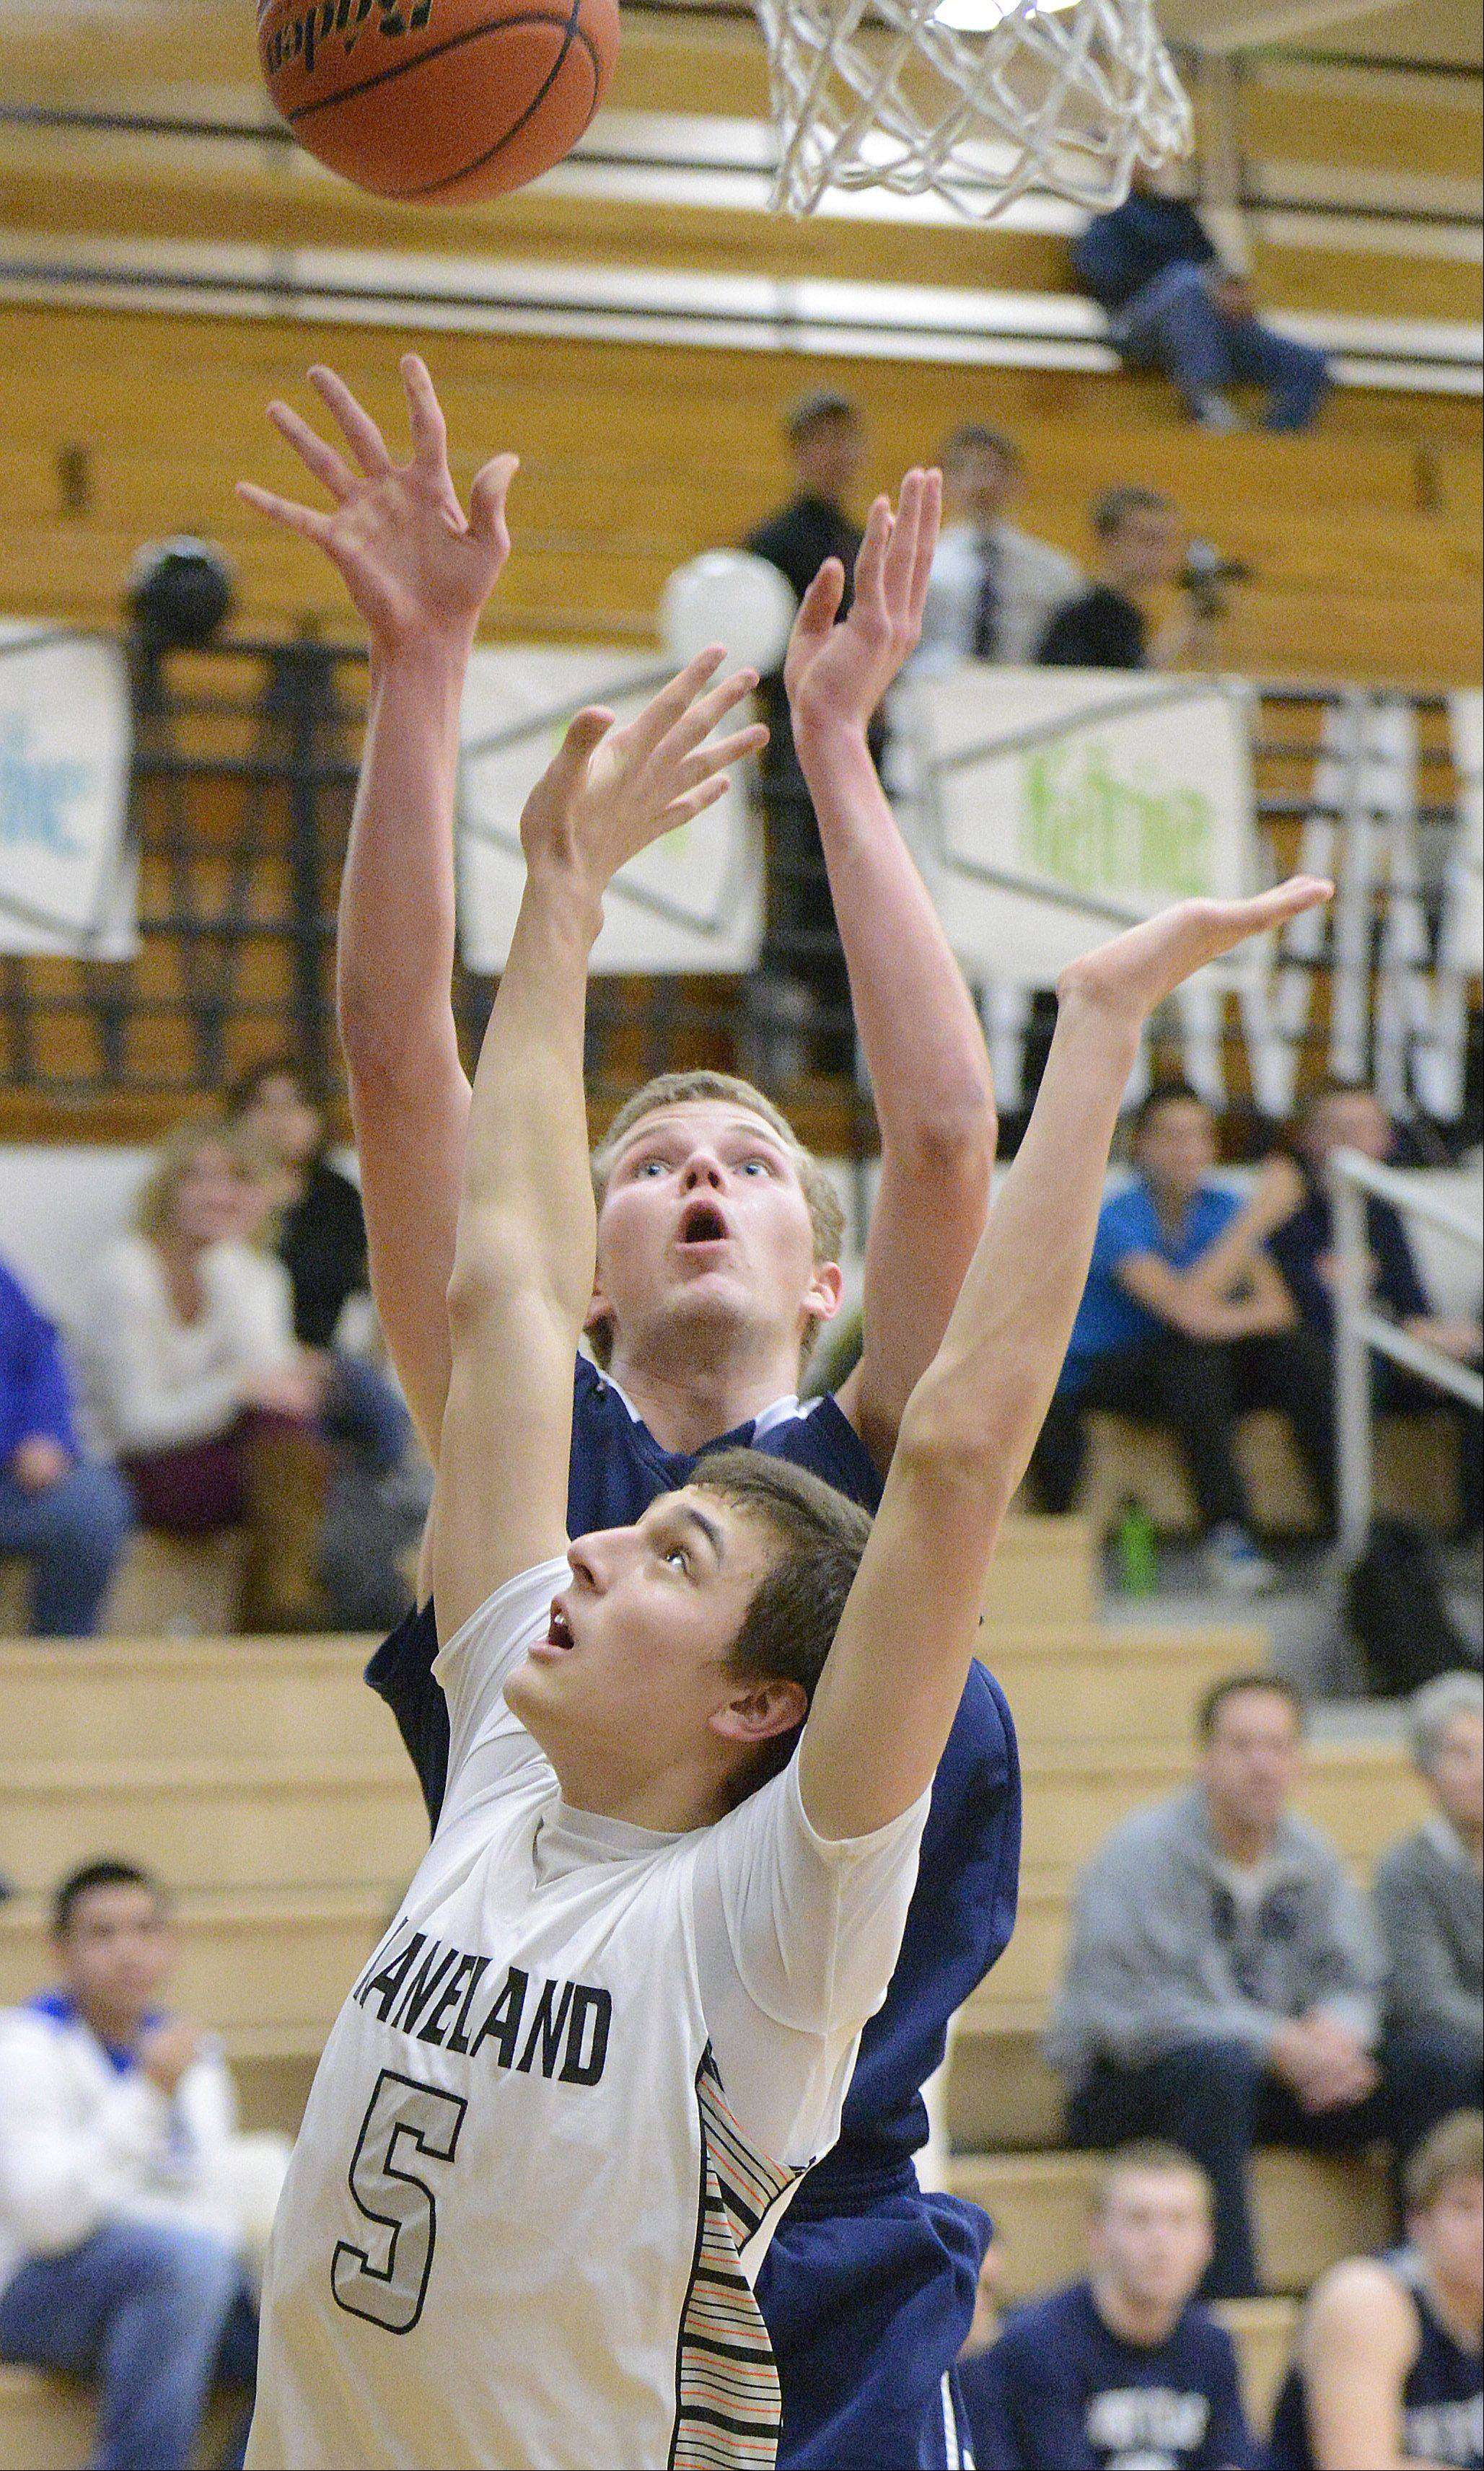 West Chicago's Mike Zajac shoots over a block by Kaneland's John Pruett in the third quarter on Tuesday, February 5.